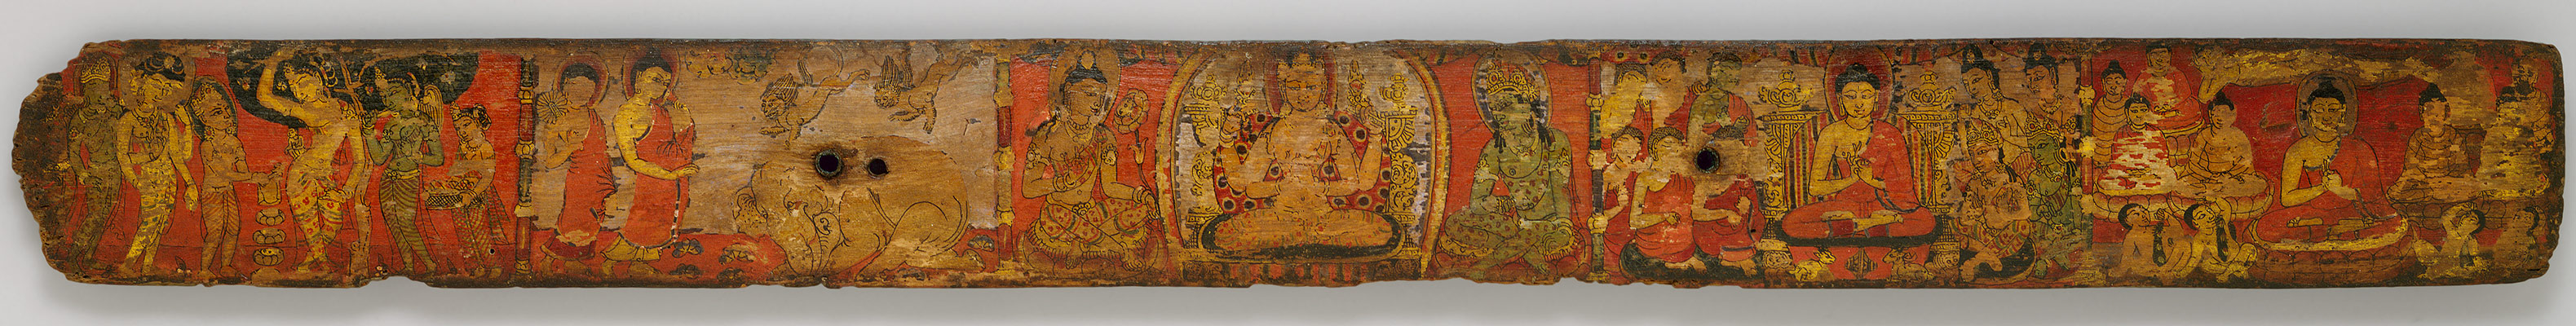 Bookcover with scenes from the life of the Buddha